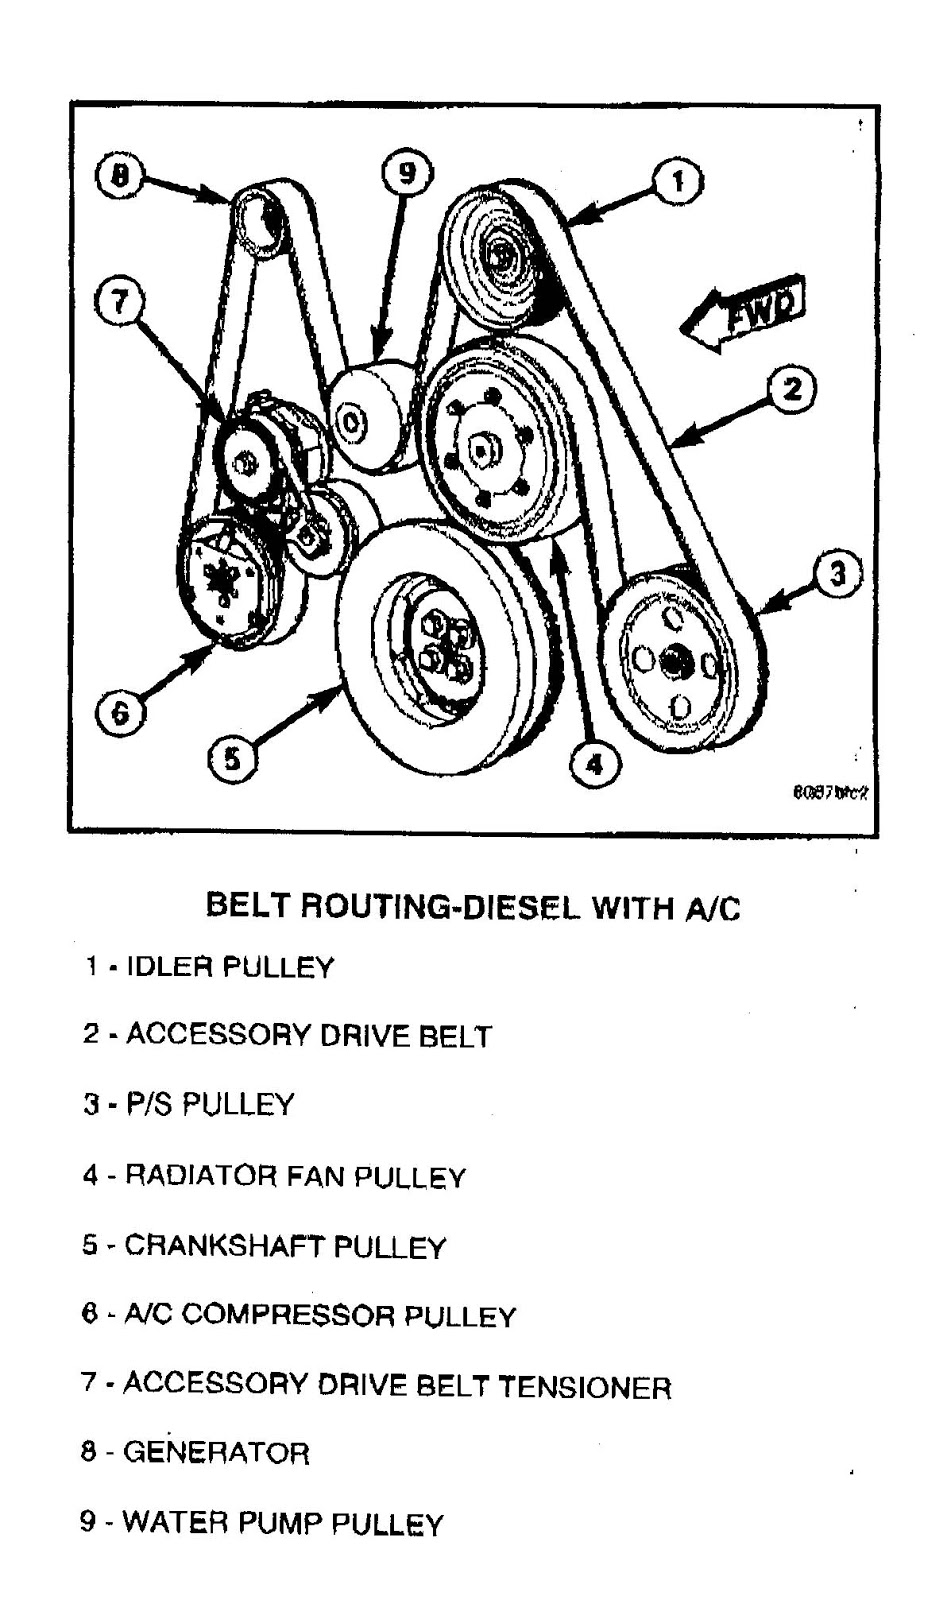 belt zara images 2013dodge ram belt diagram5 [ 951 x 1600 Pixel ]